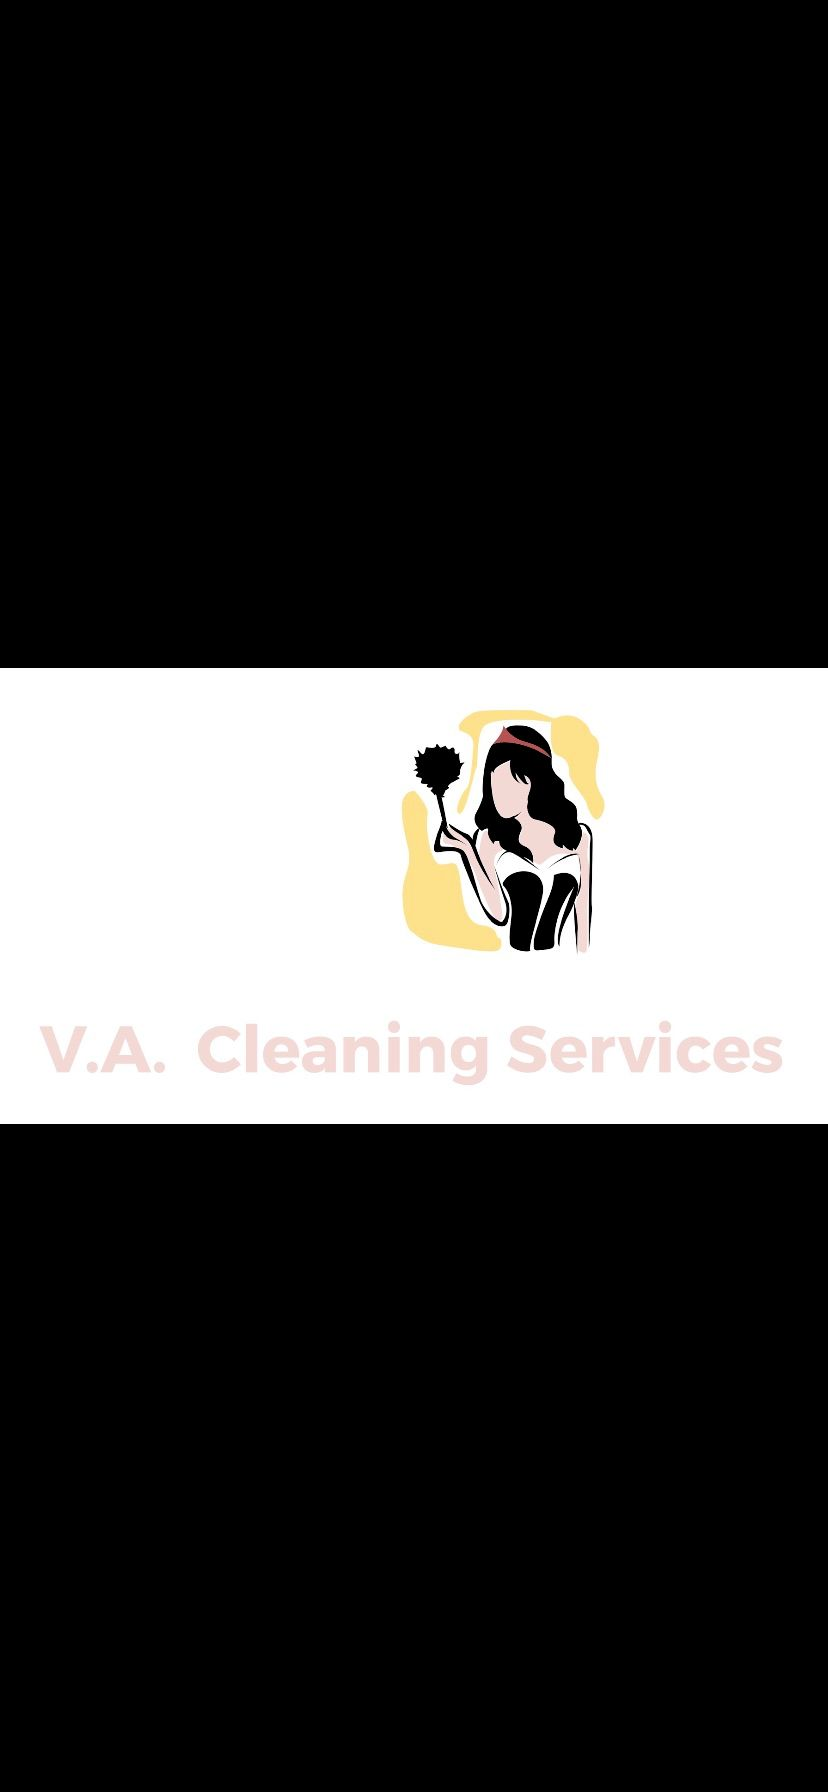 V.A. Cleaning Services